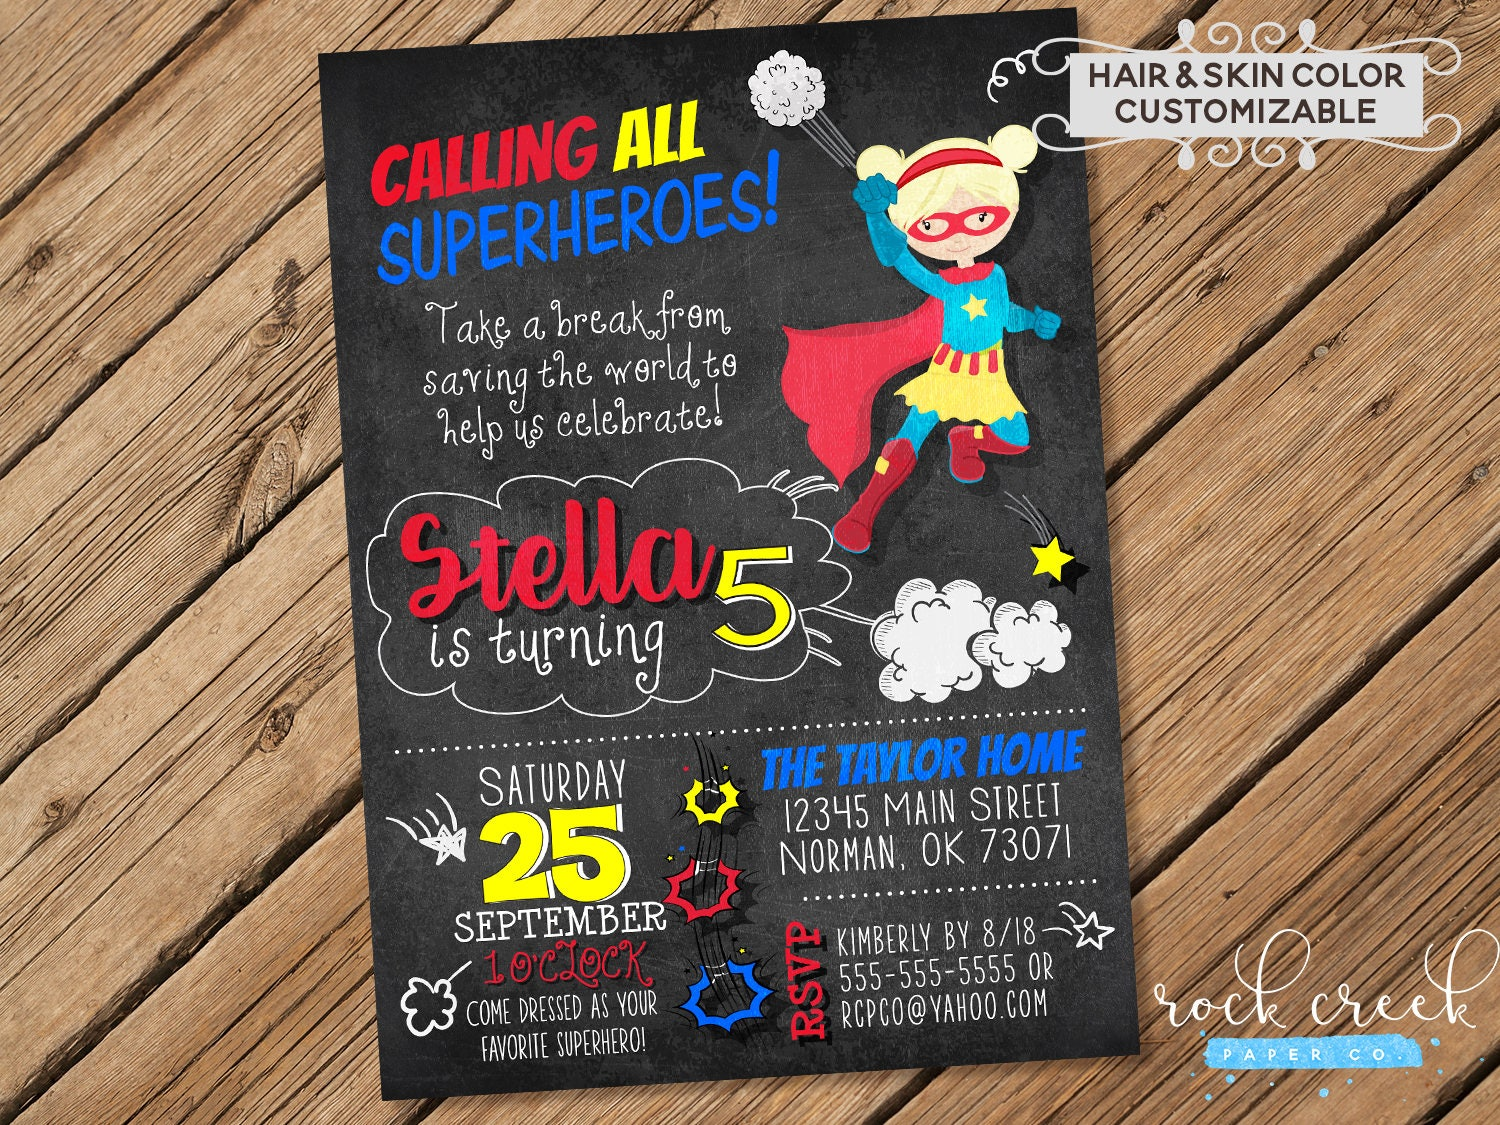 Supergirl Party Invitation, Supergirl Birthday Party, Chalkboard ...